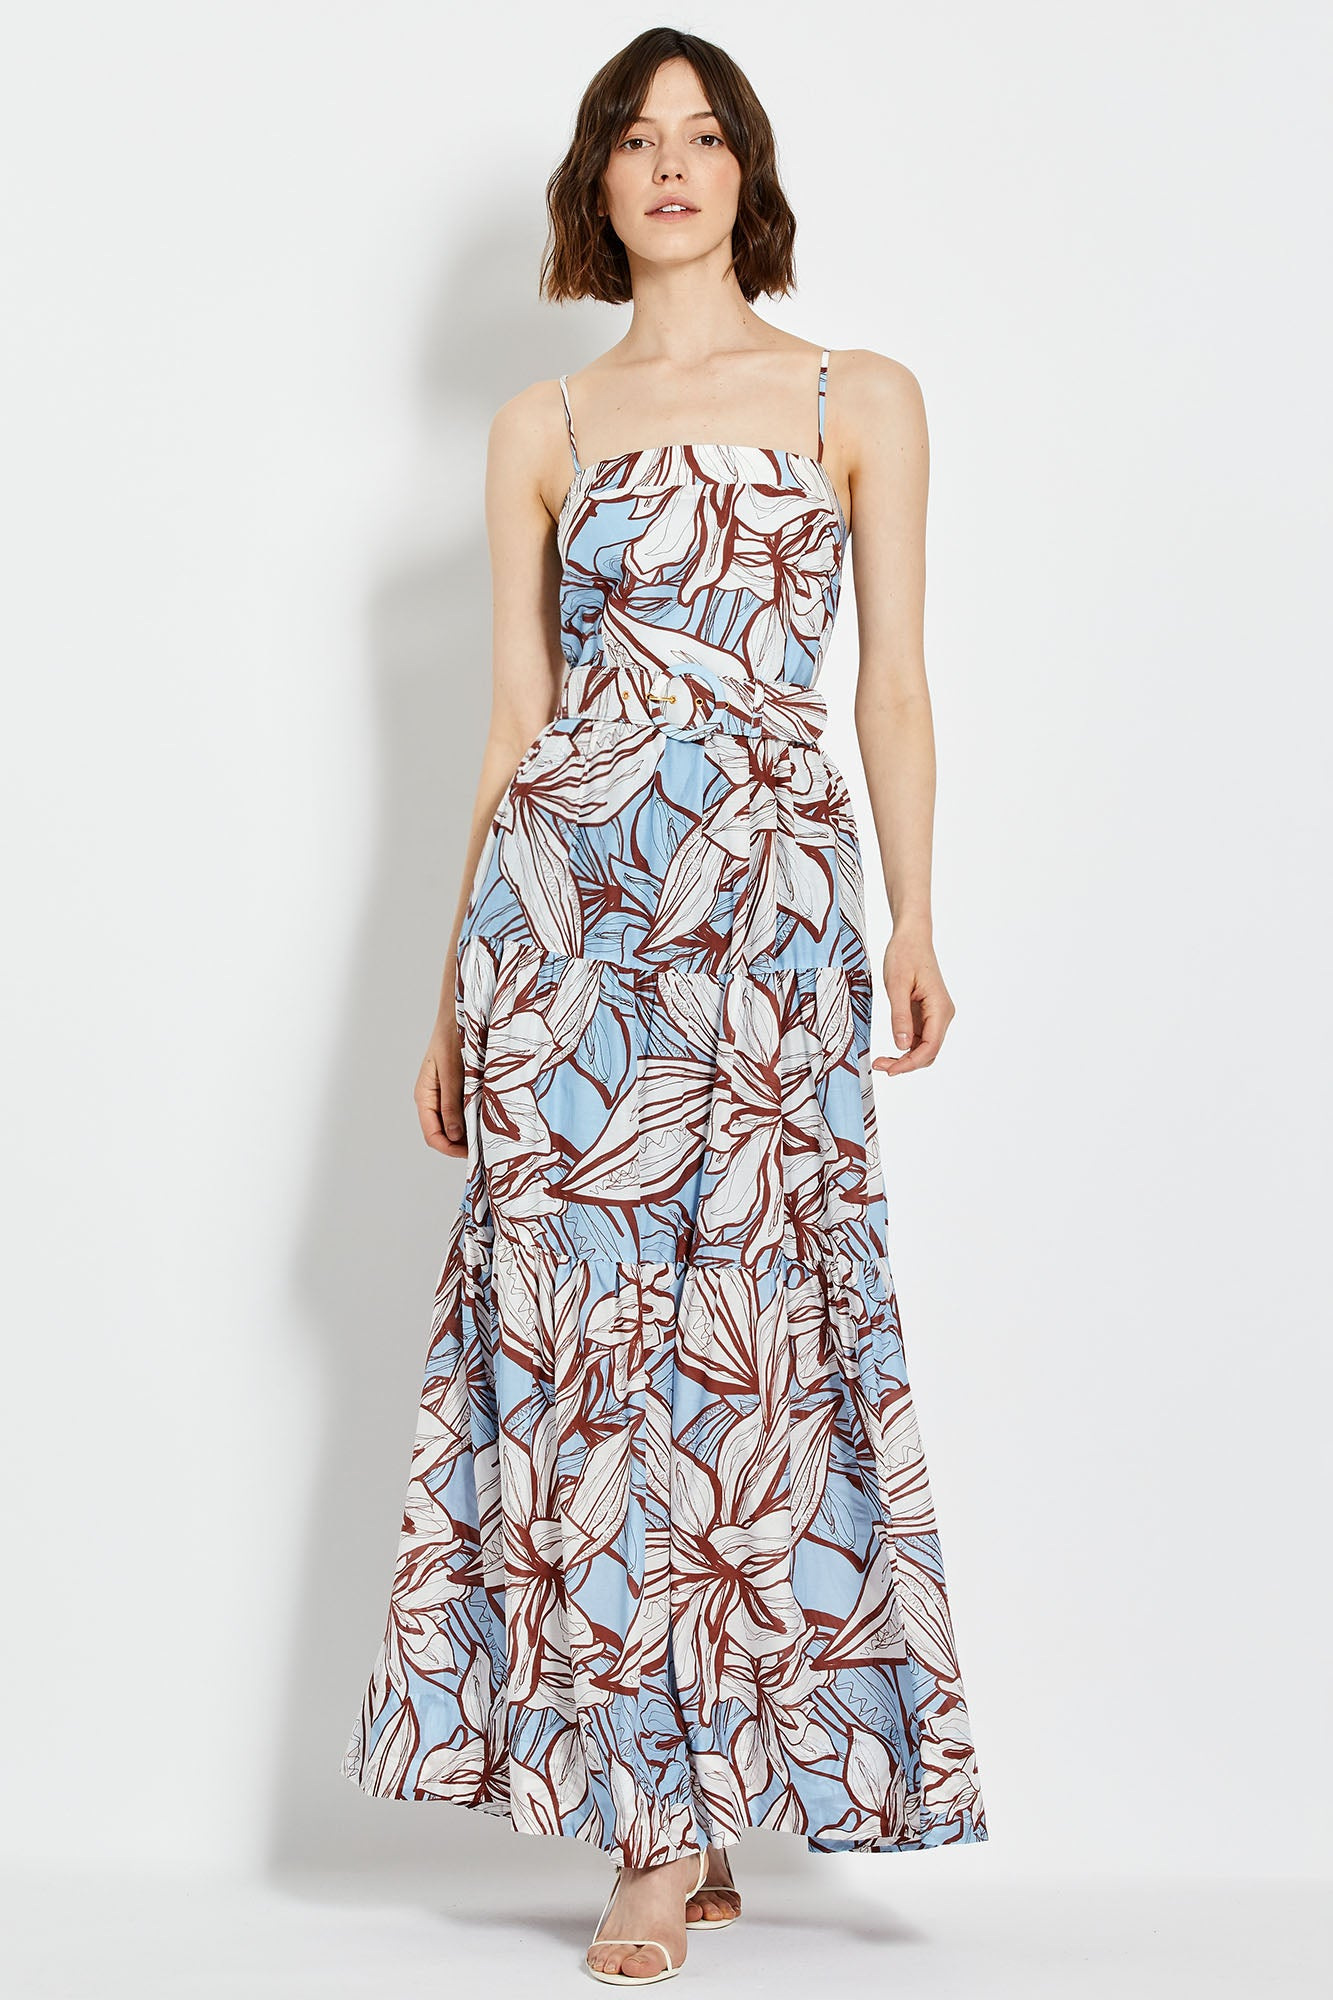 Kerala Dress - Mocha Etched Floral